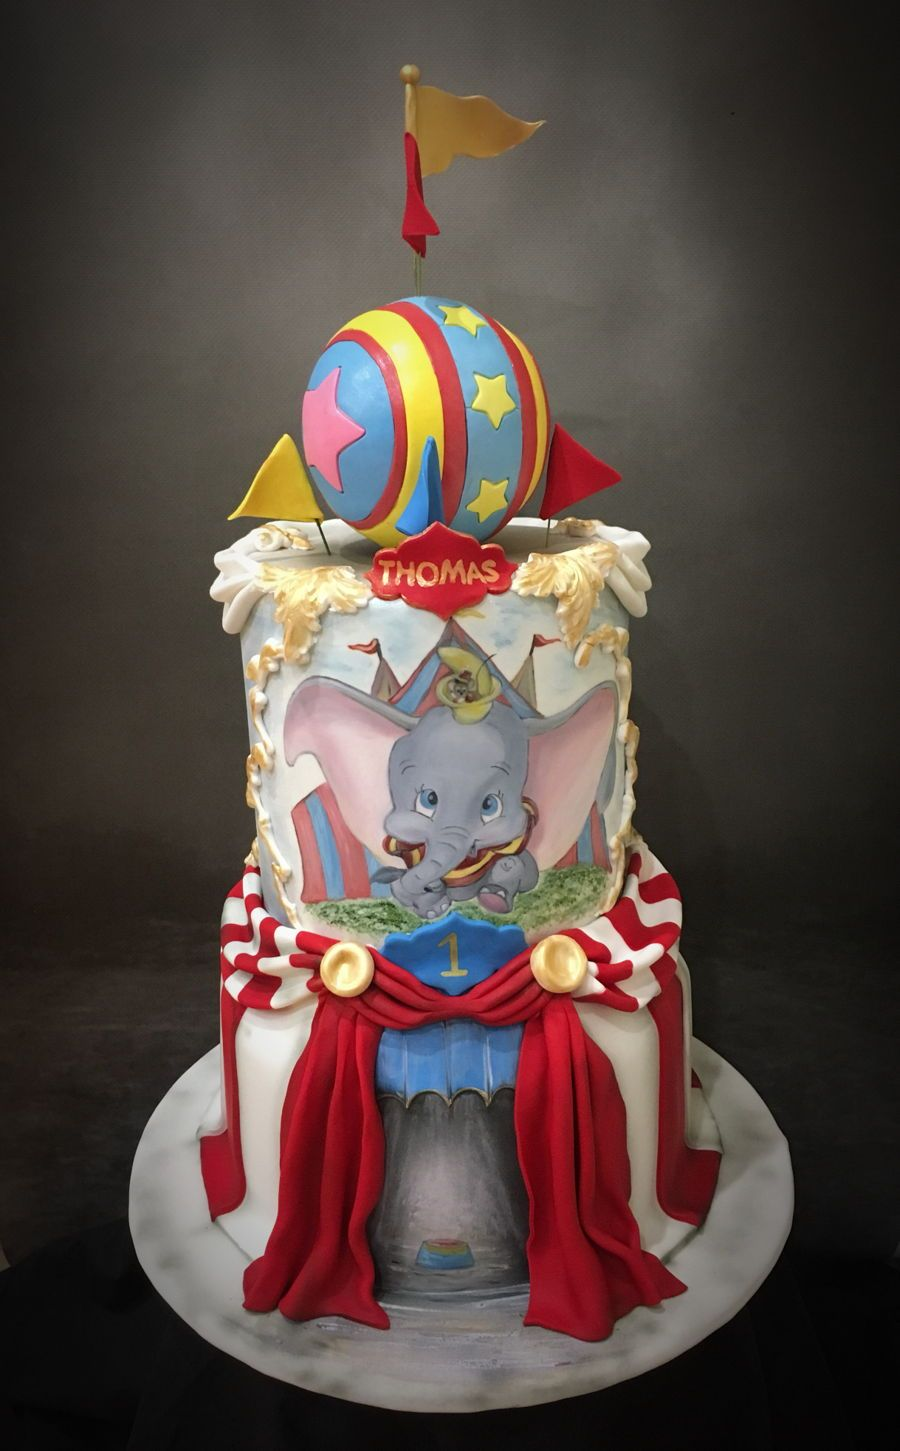 Tremendous Dumbo Circus 1St Birthday Cake Circus 1St Birthdays Disney Birthday Cards Printable Trancafe Filternl